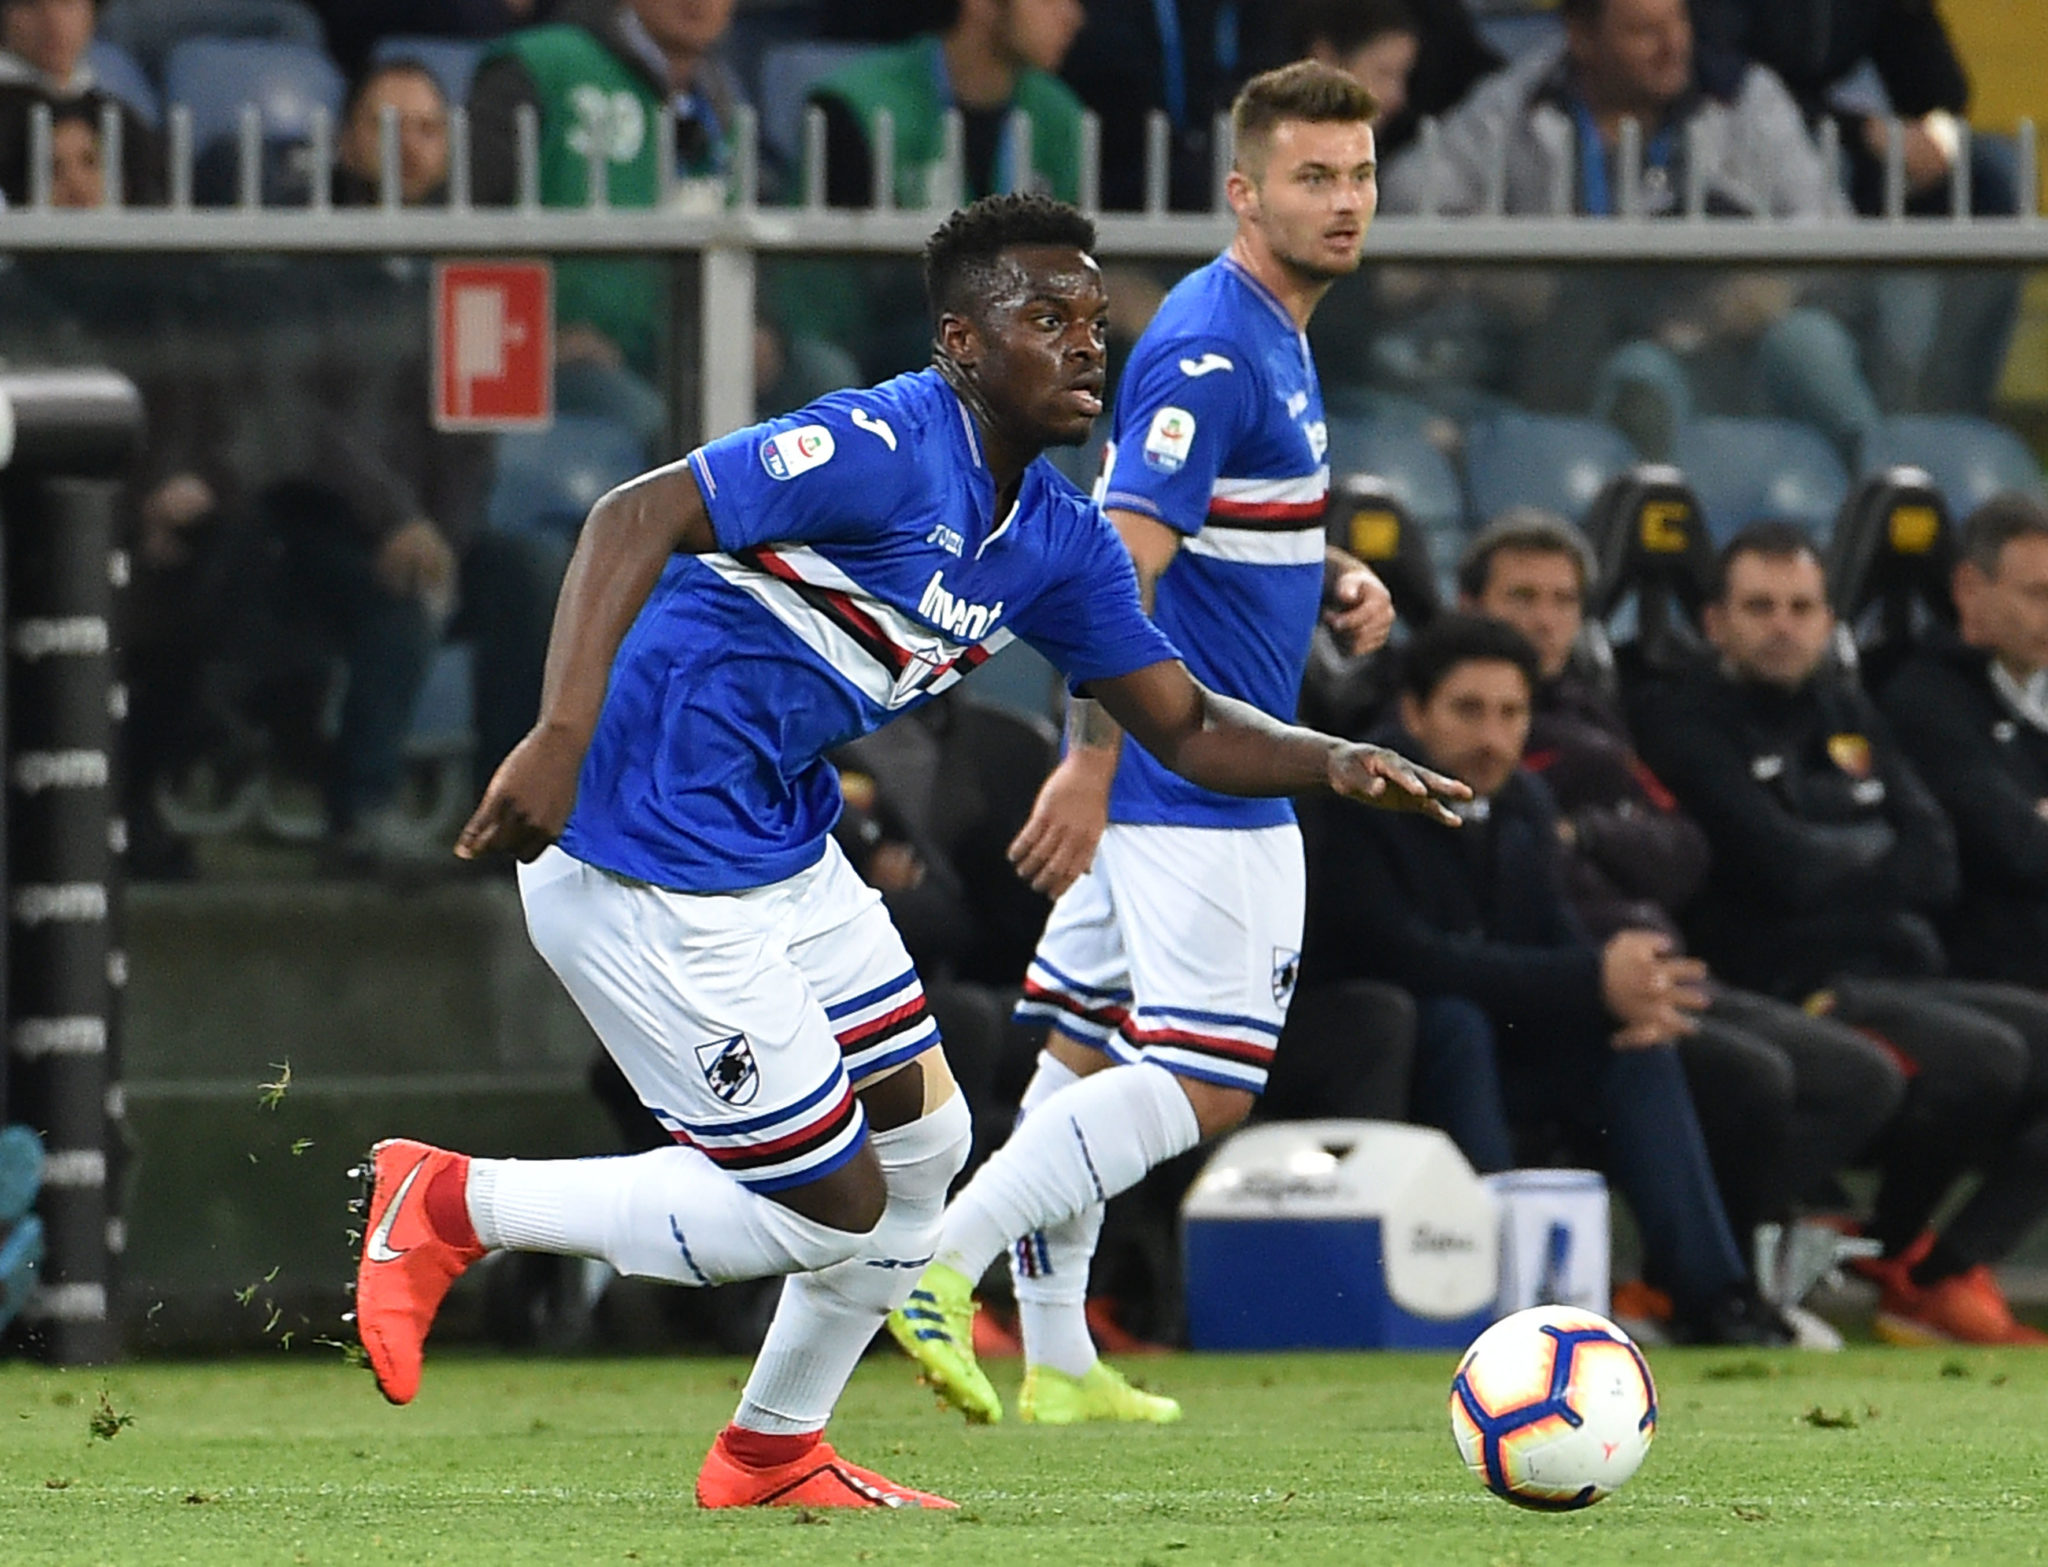 Ronaldo Vieira can prove himself at Sampdoria